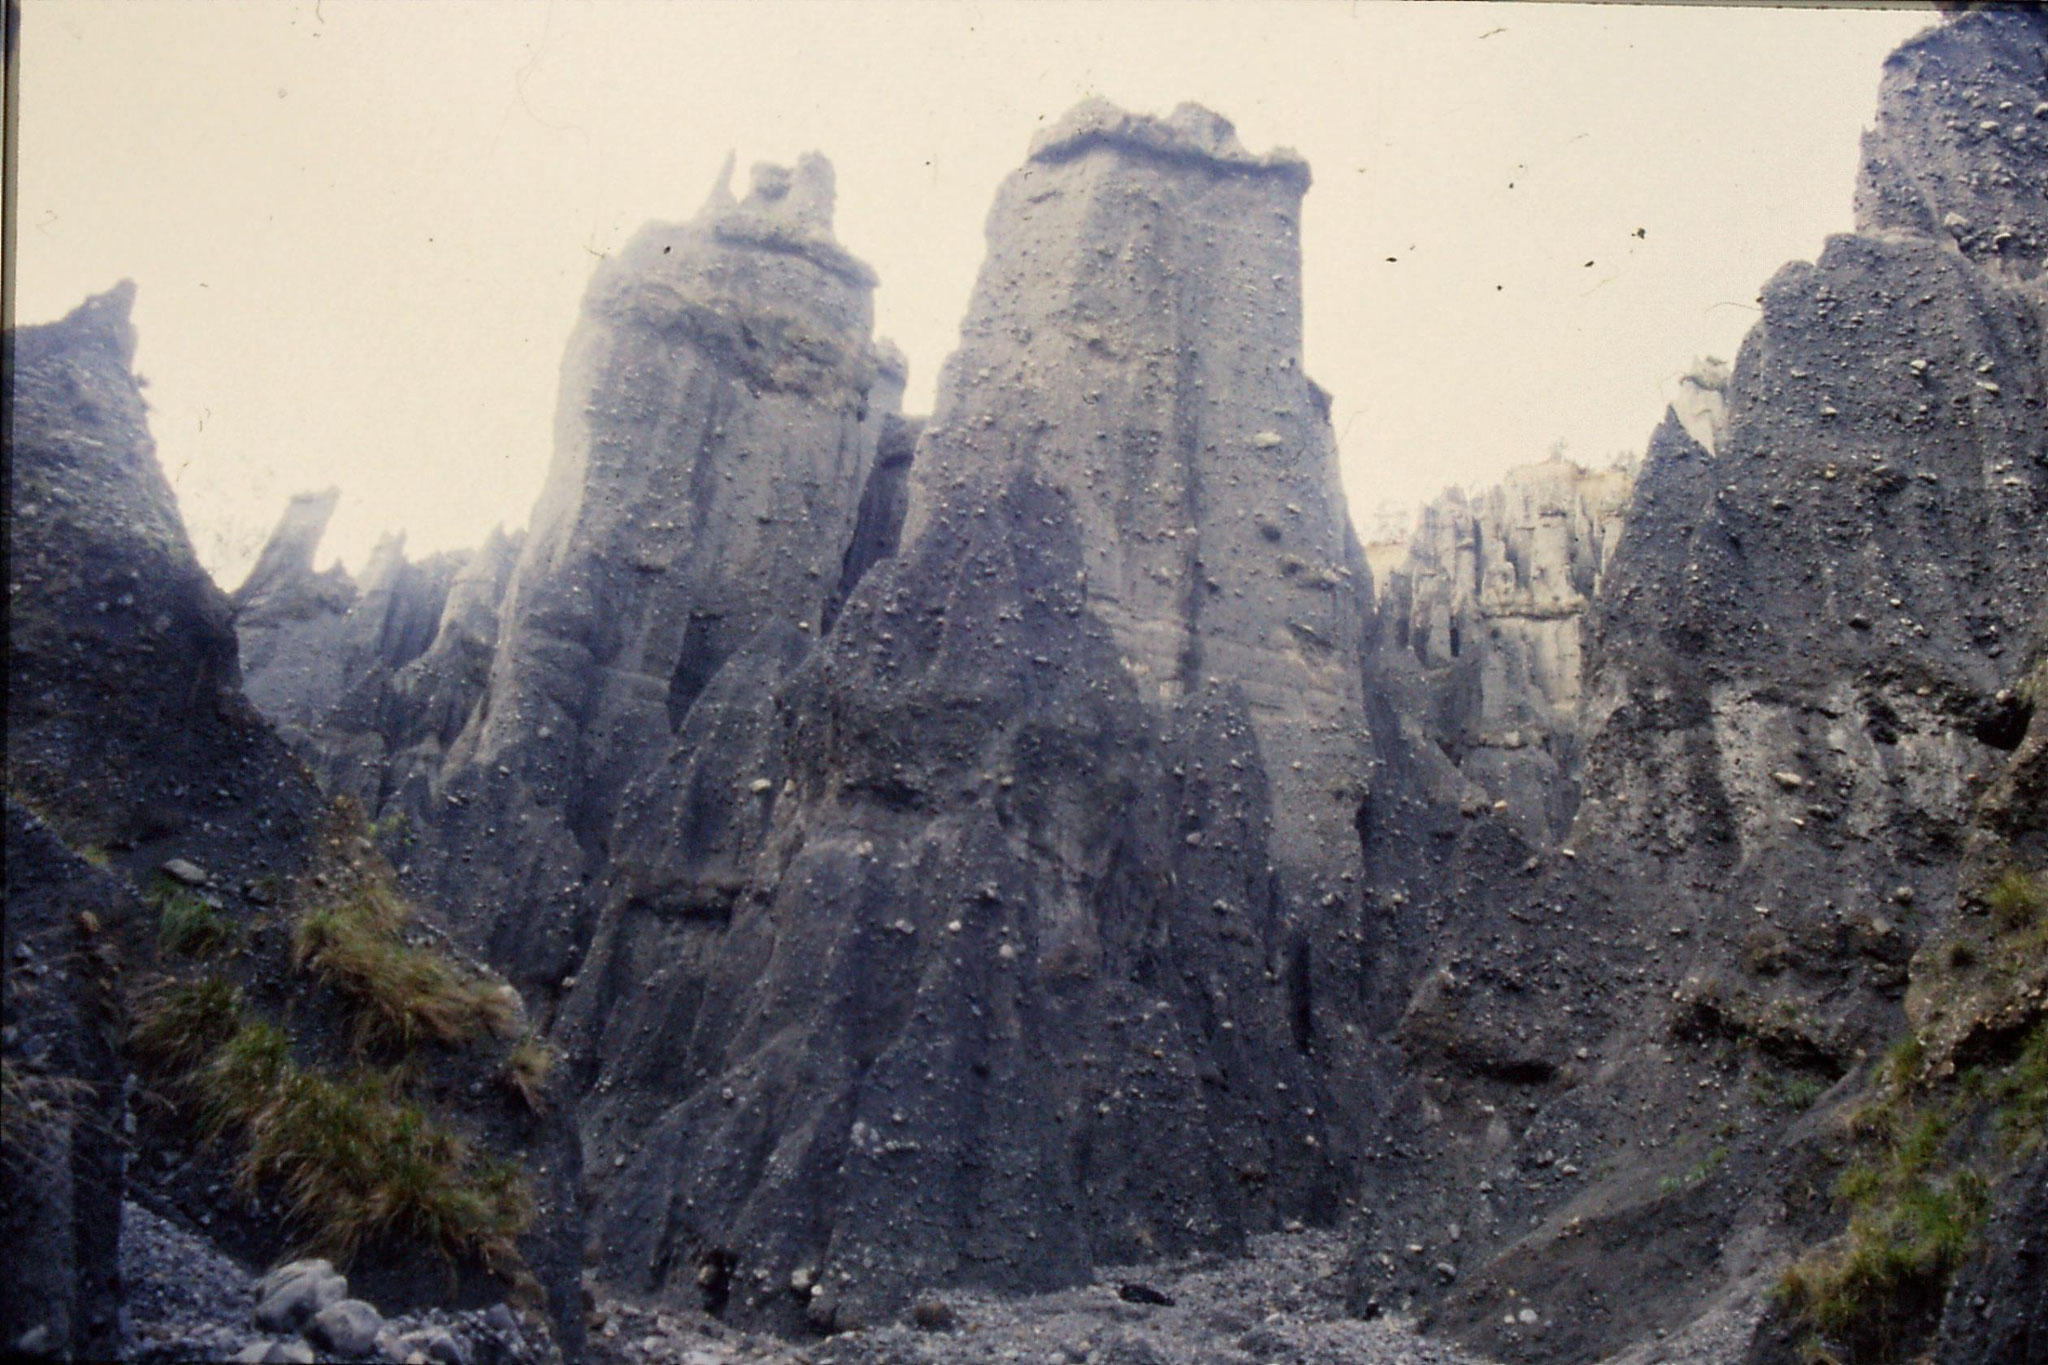 26/8/1990: 12:  Putangirua Pinnacles